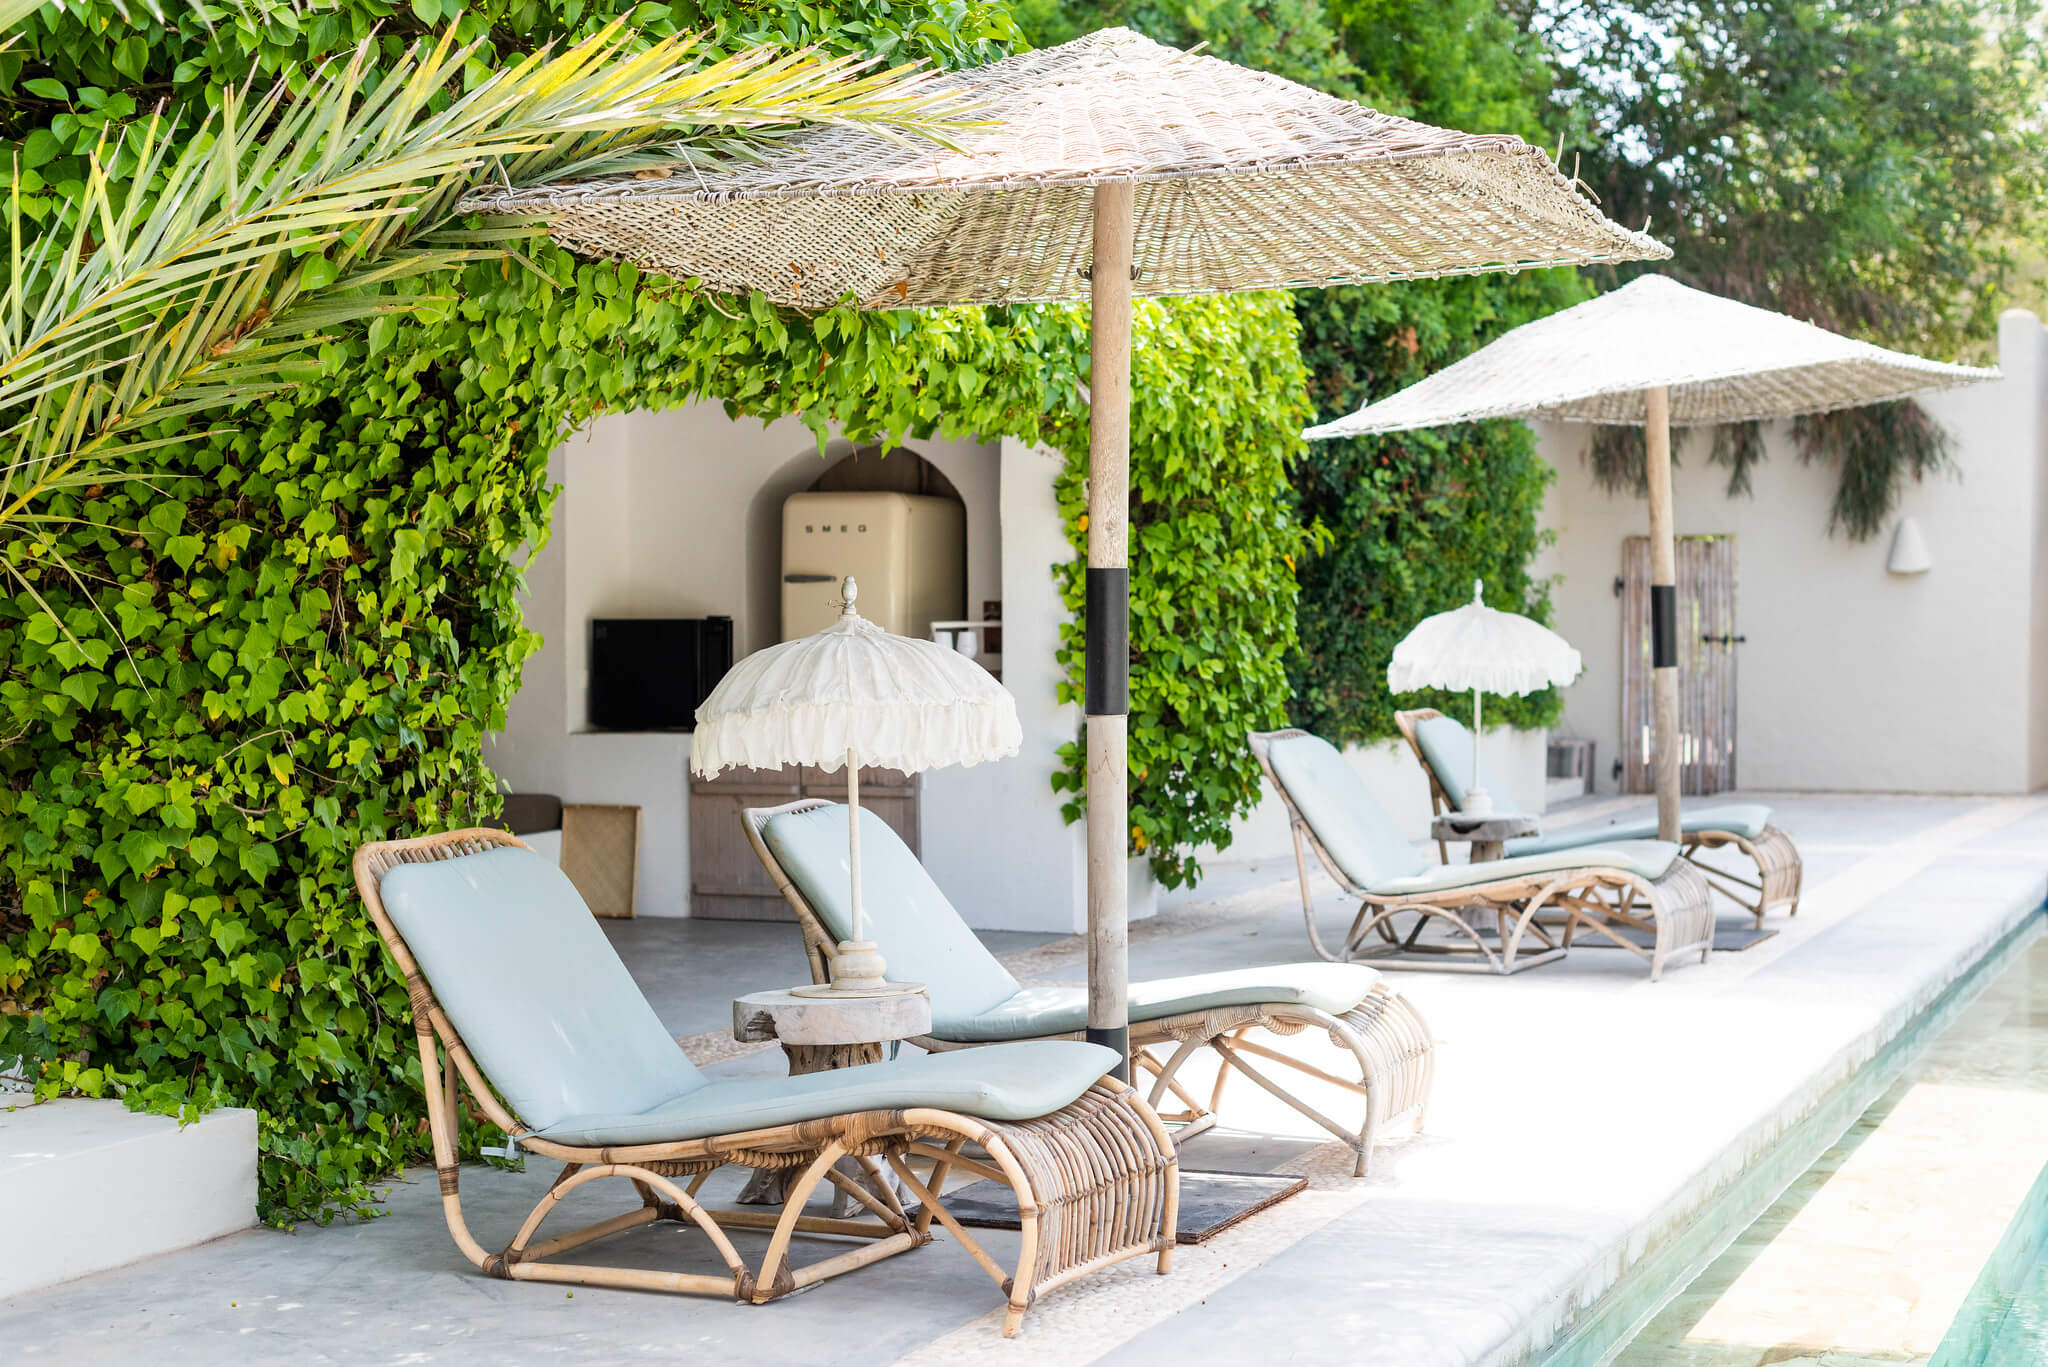 https://www.white-ibiza.com/wp-content/uploads/2020/05/white-ibiza-villas-can-riviere-exterior-rattan-loungers.jpg